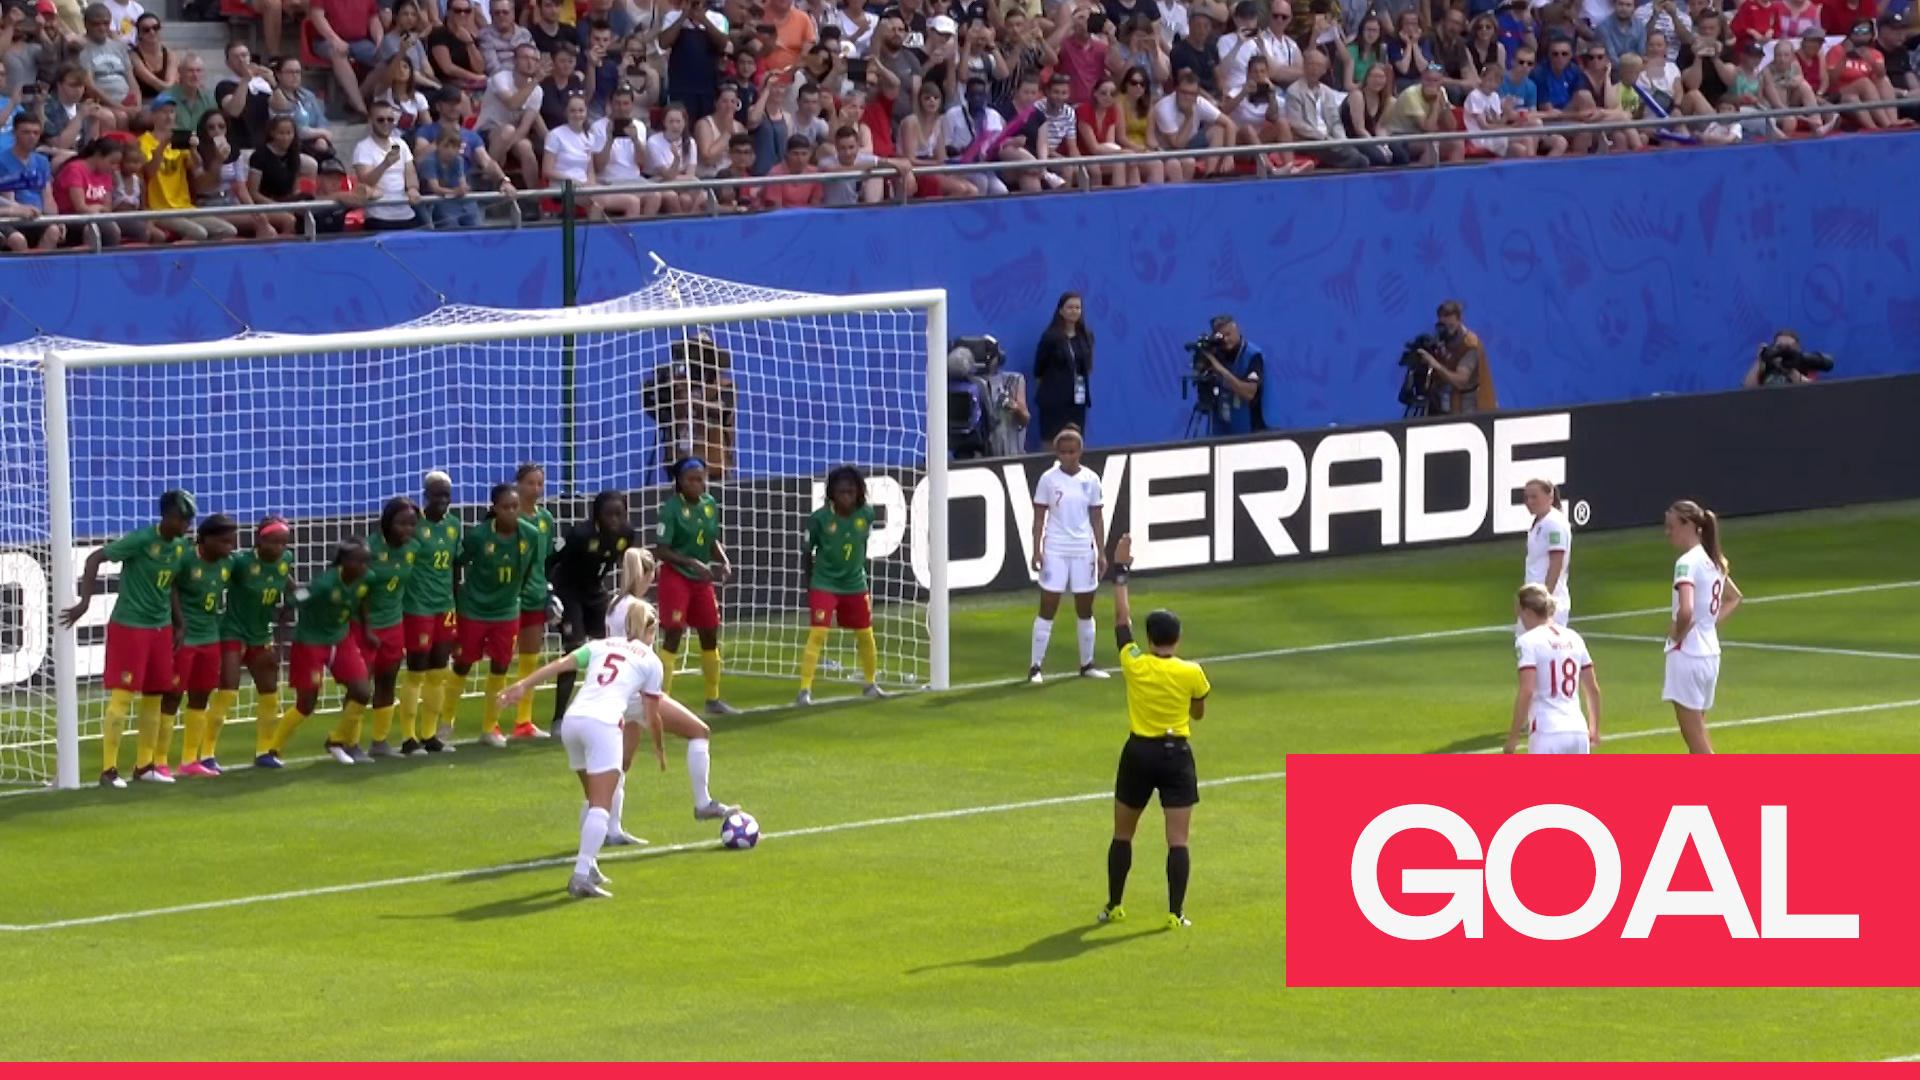 Women's World Cup 2019: Houghton smashes England into the lead from an indirect free kick